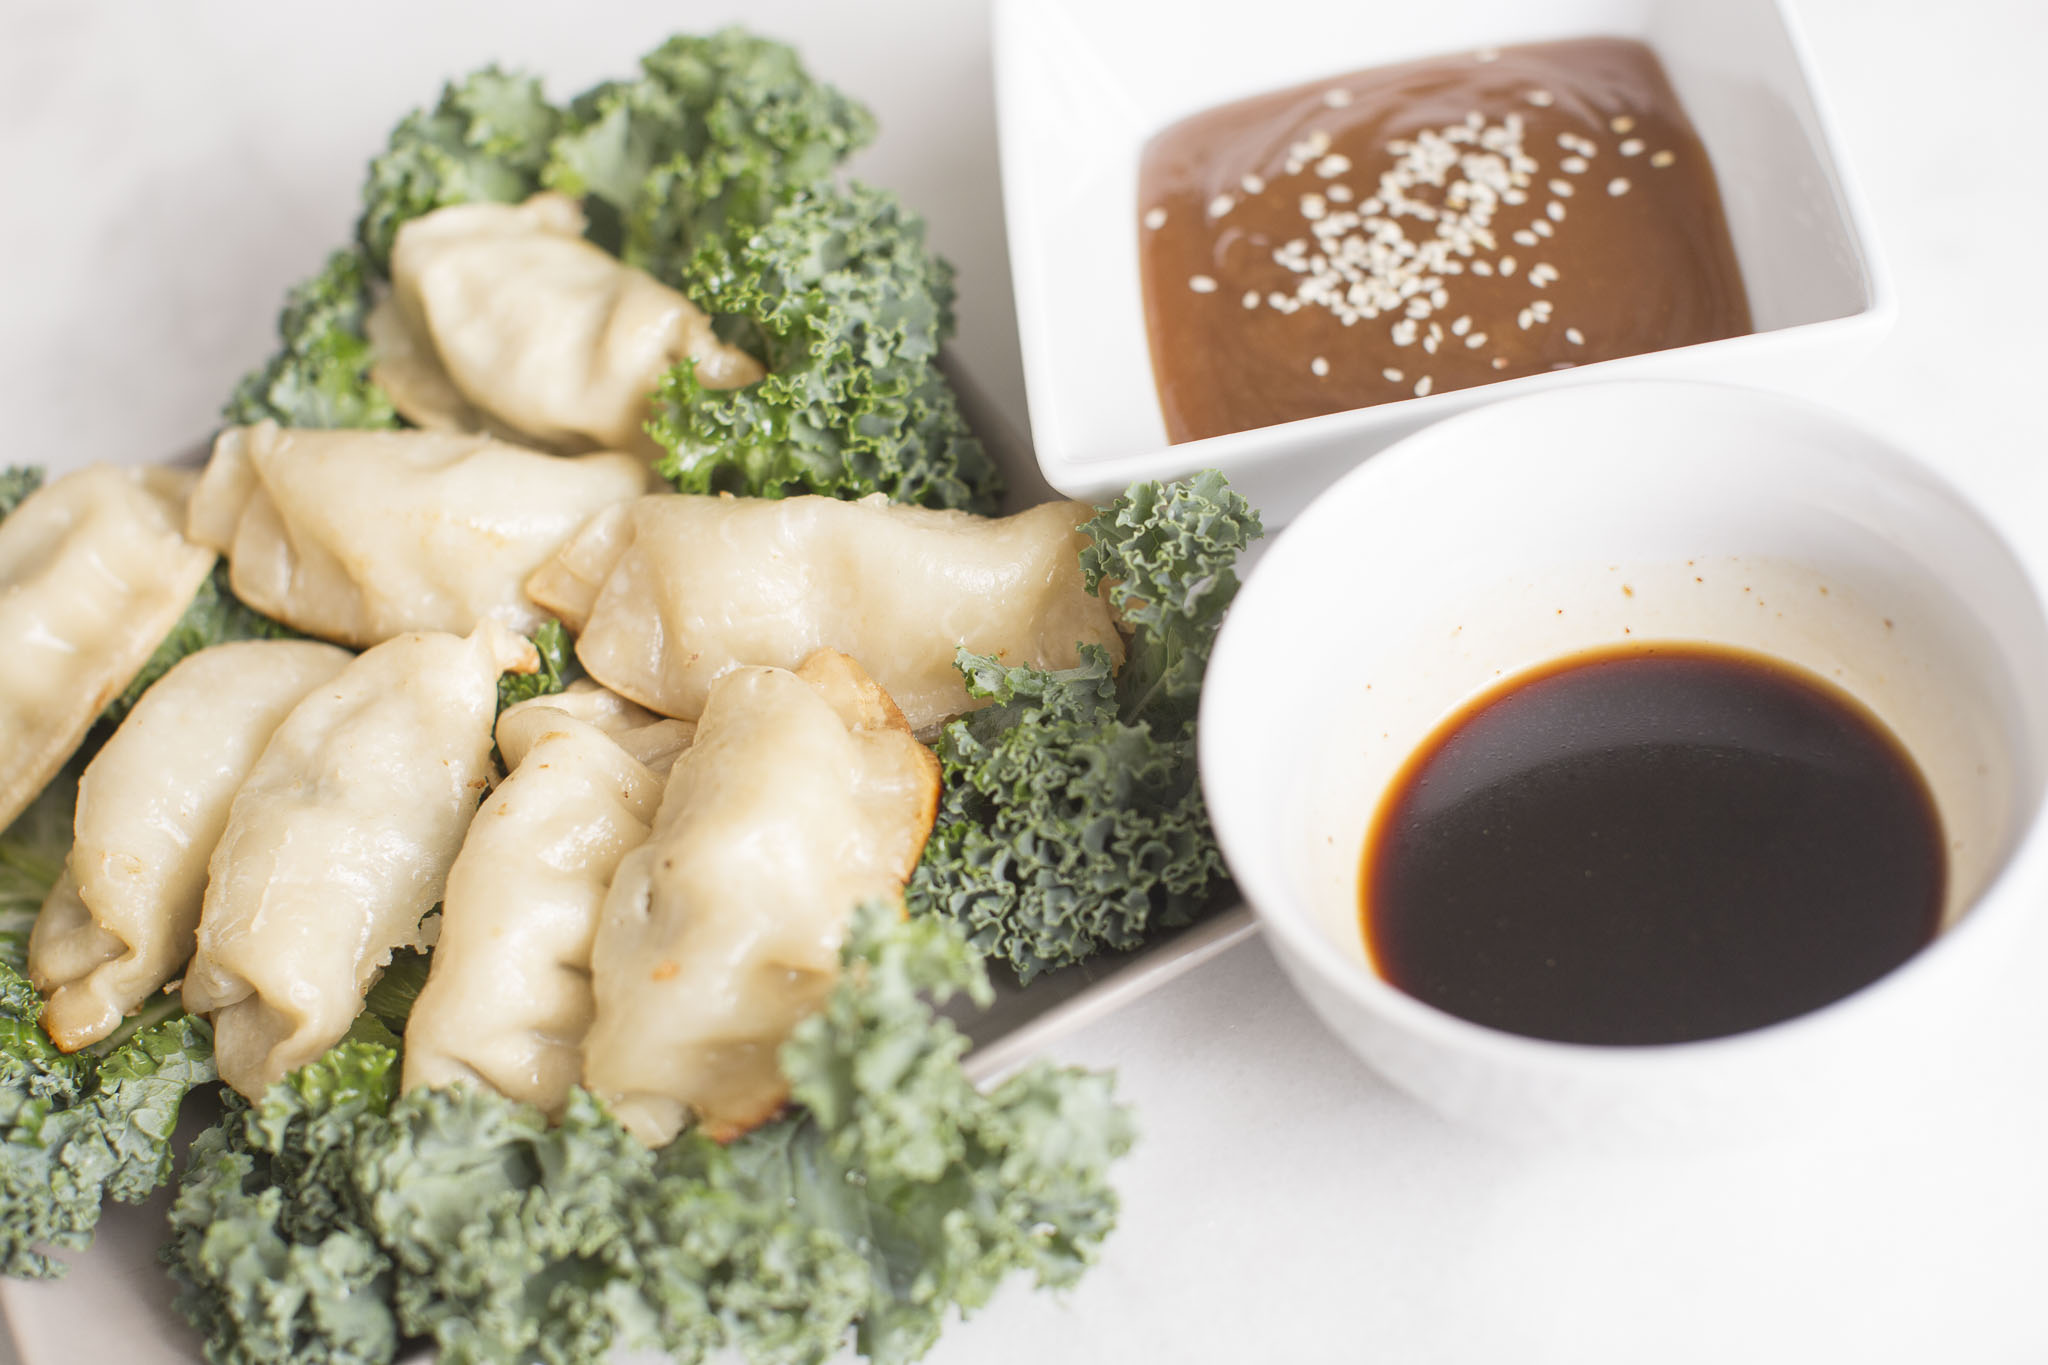 Ling Ling Asian Food Vegetable Potstickers - #LingLingAsianFood #LL #AD